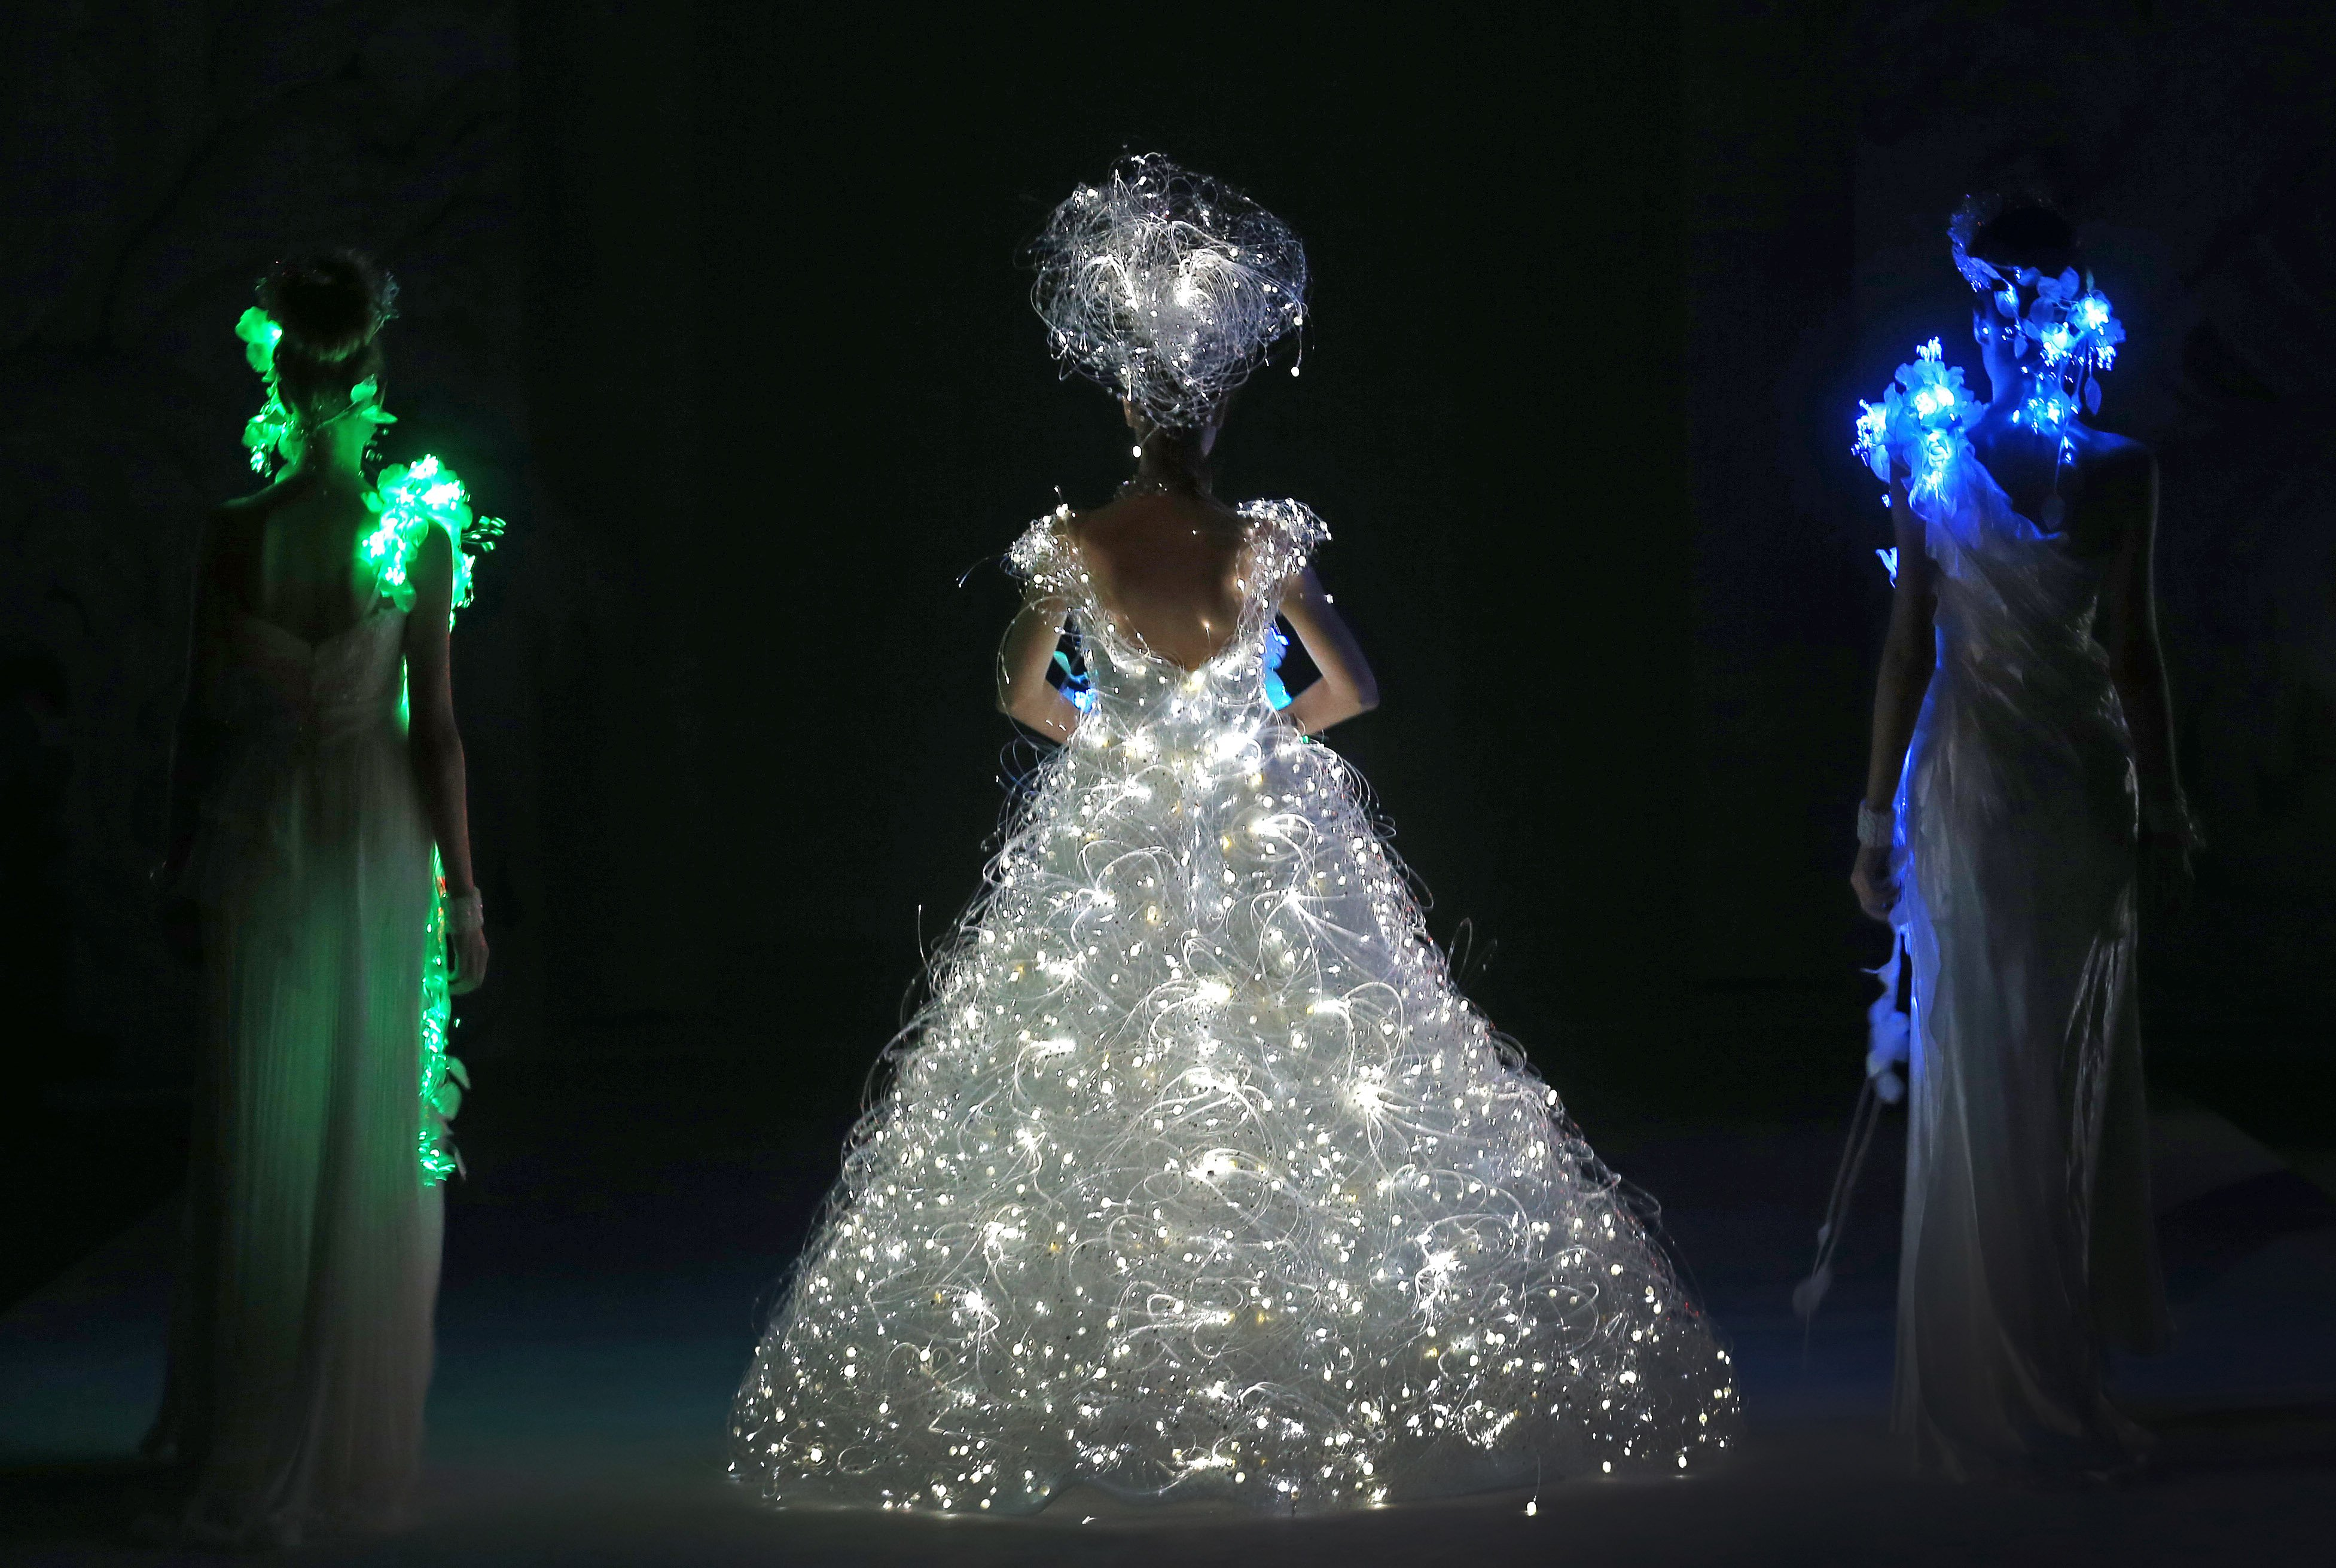 Photos south china morning post for Wedding dress with lights